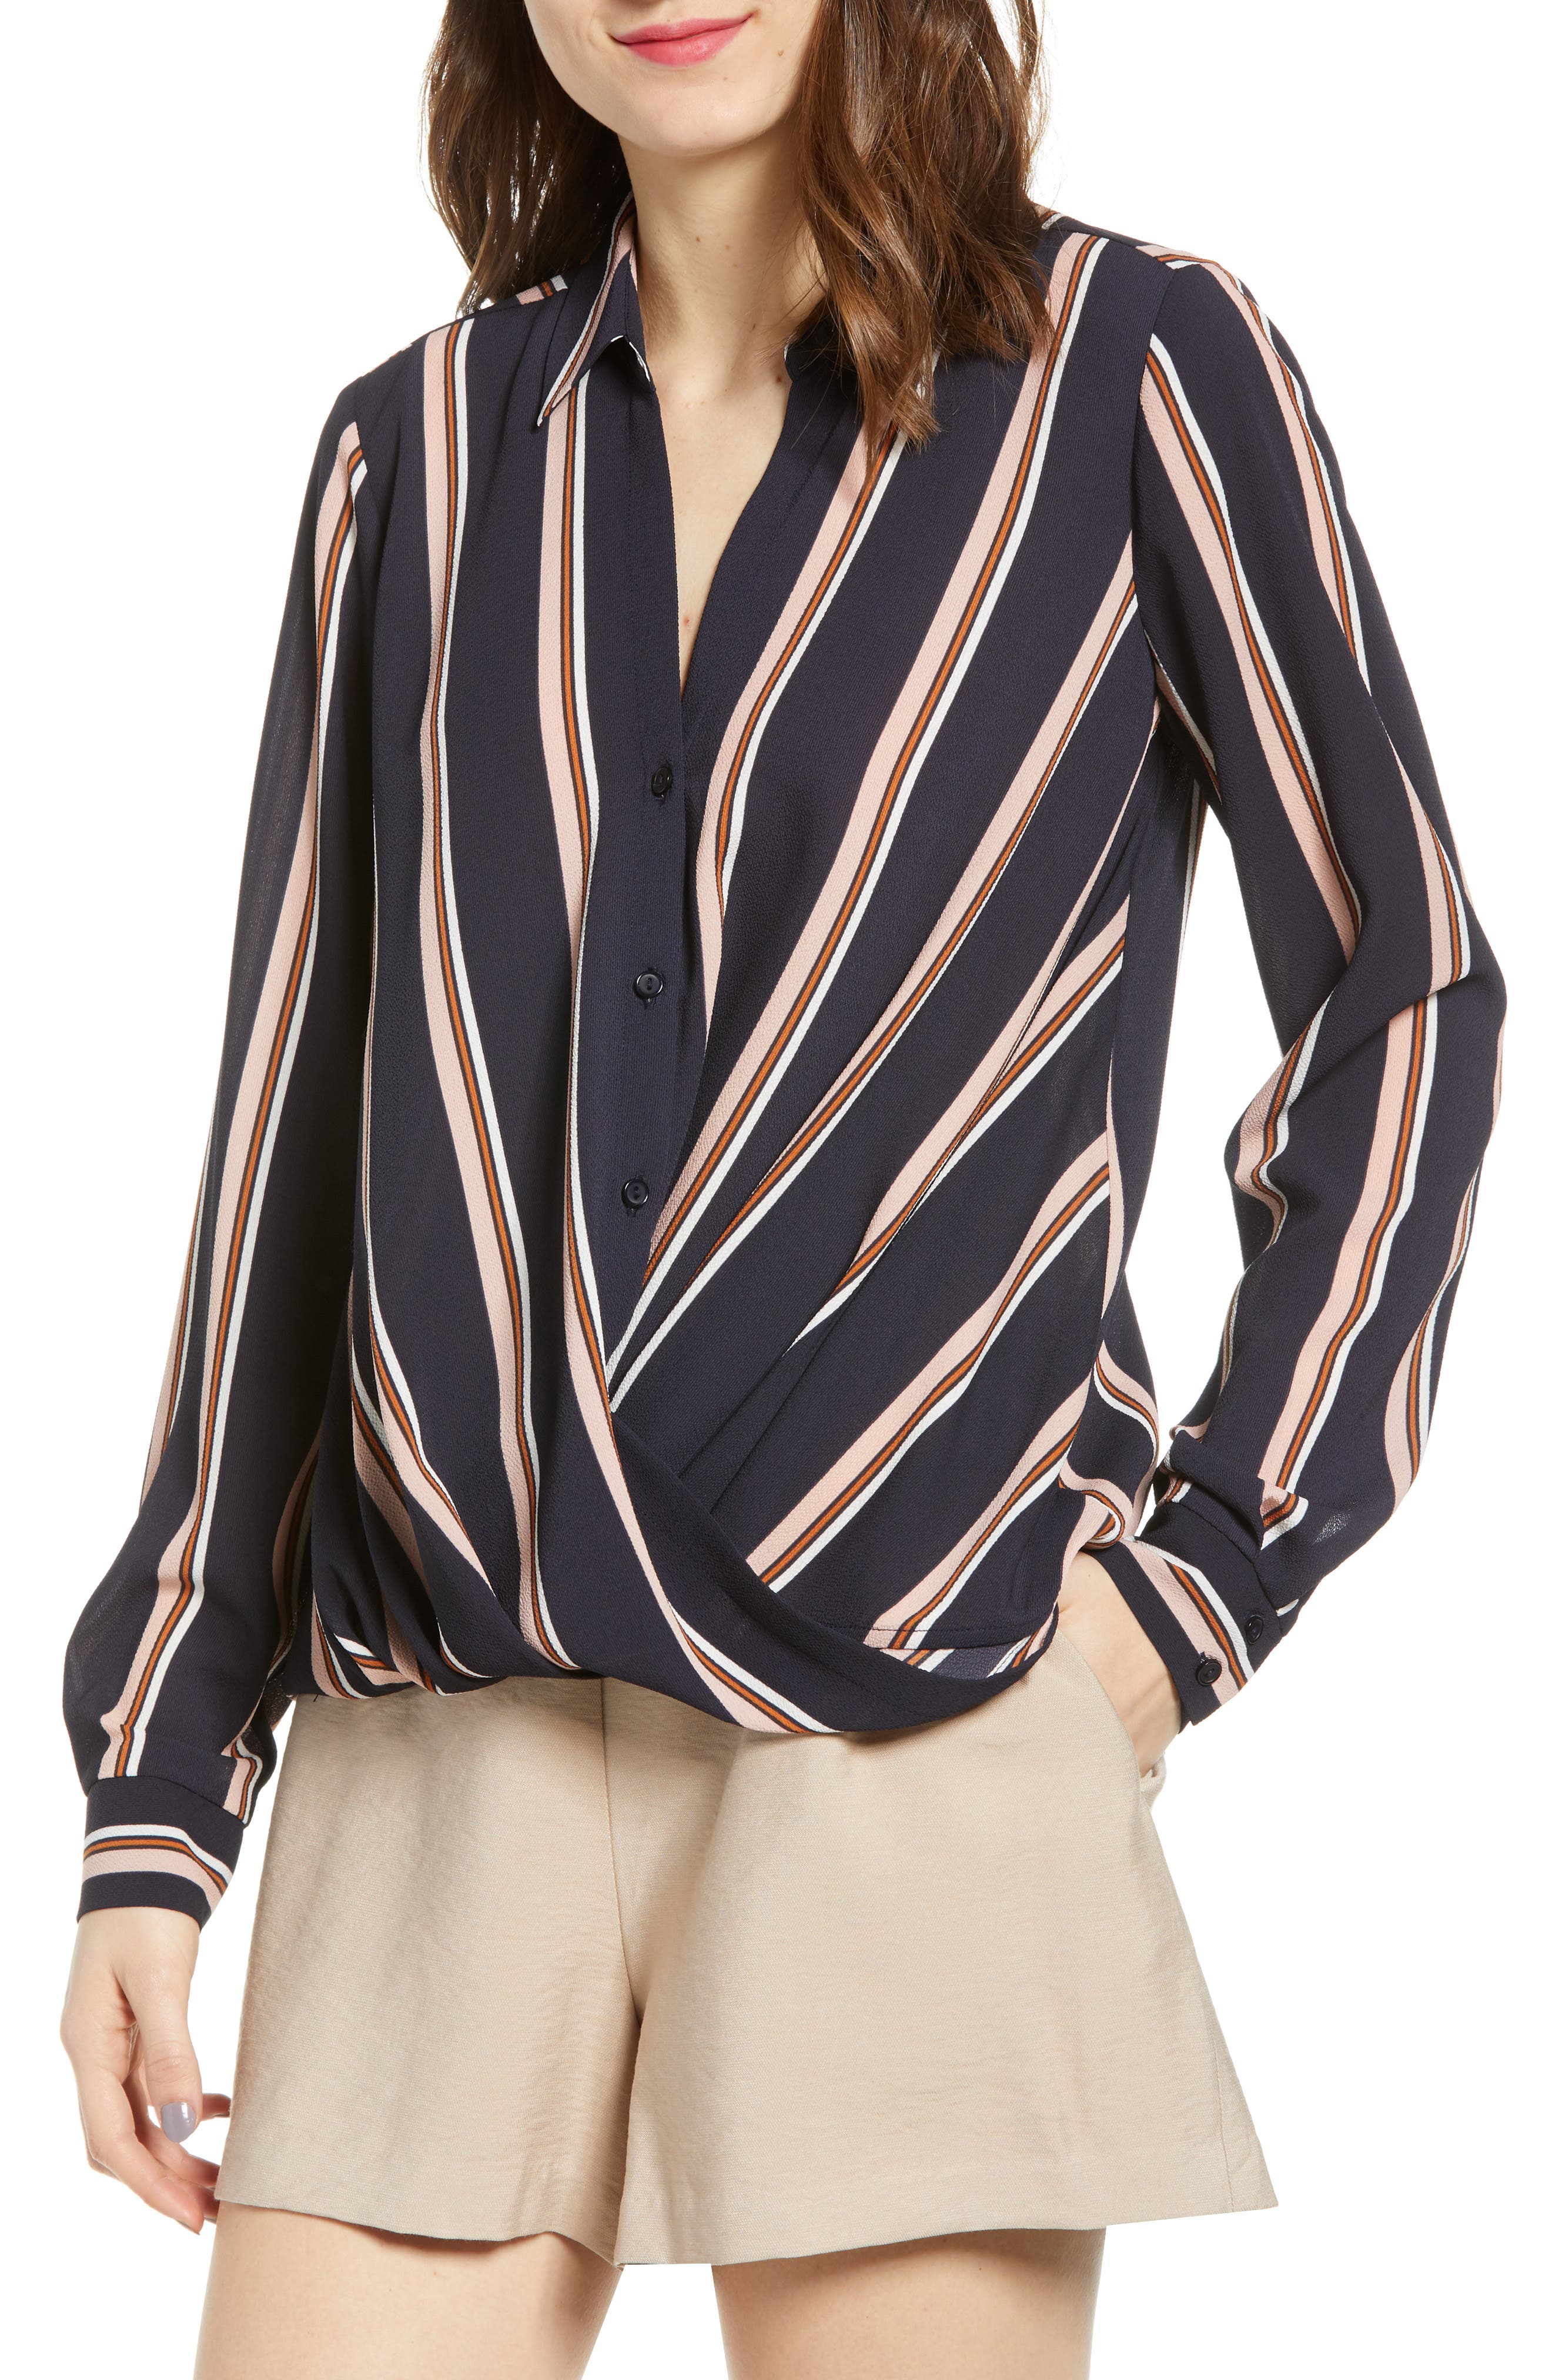 ALL IN FAVOR, Patterned Drape Front Blouse, Main thumbnail 1, color, NAVY STRIPE